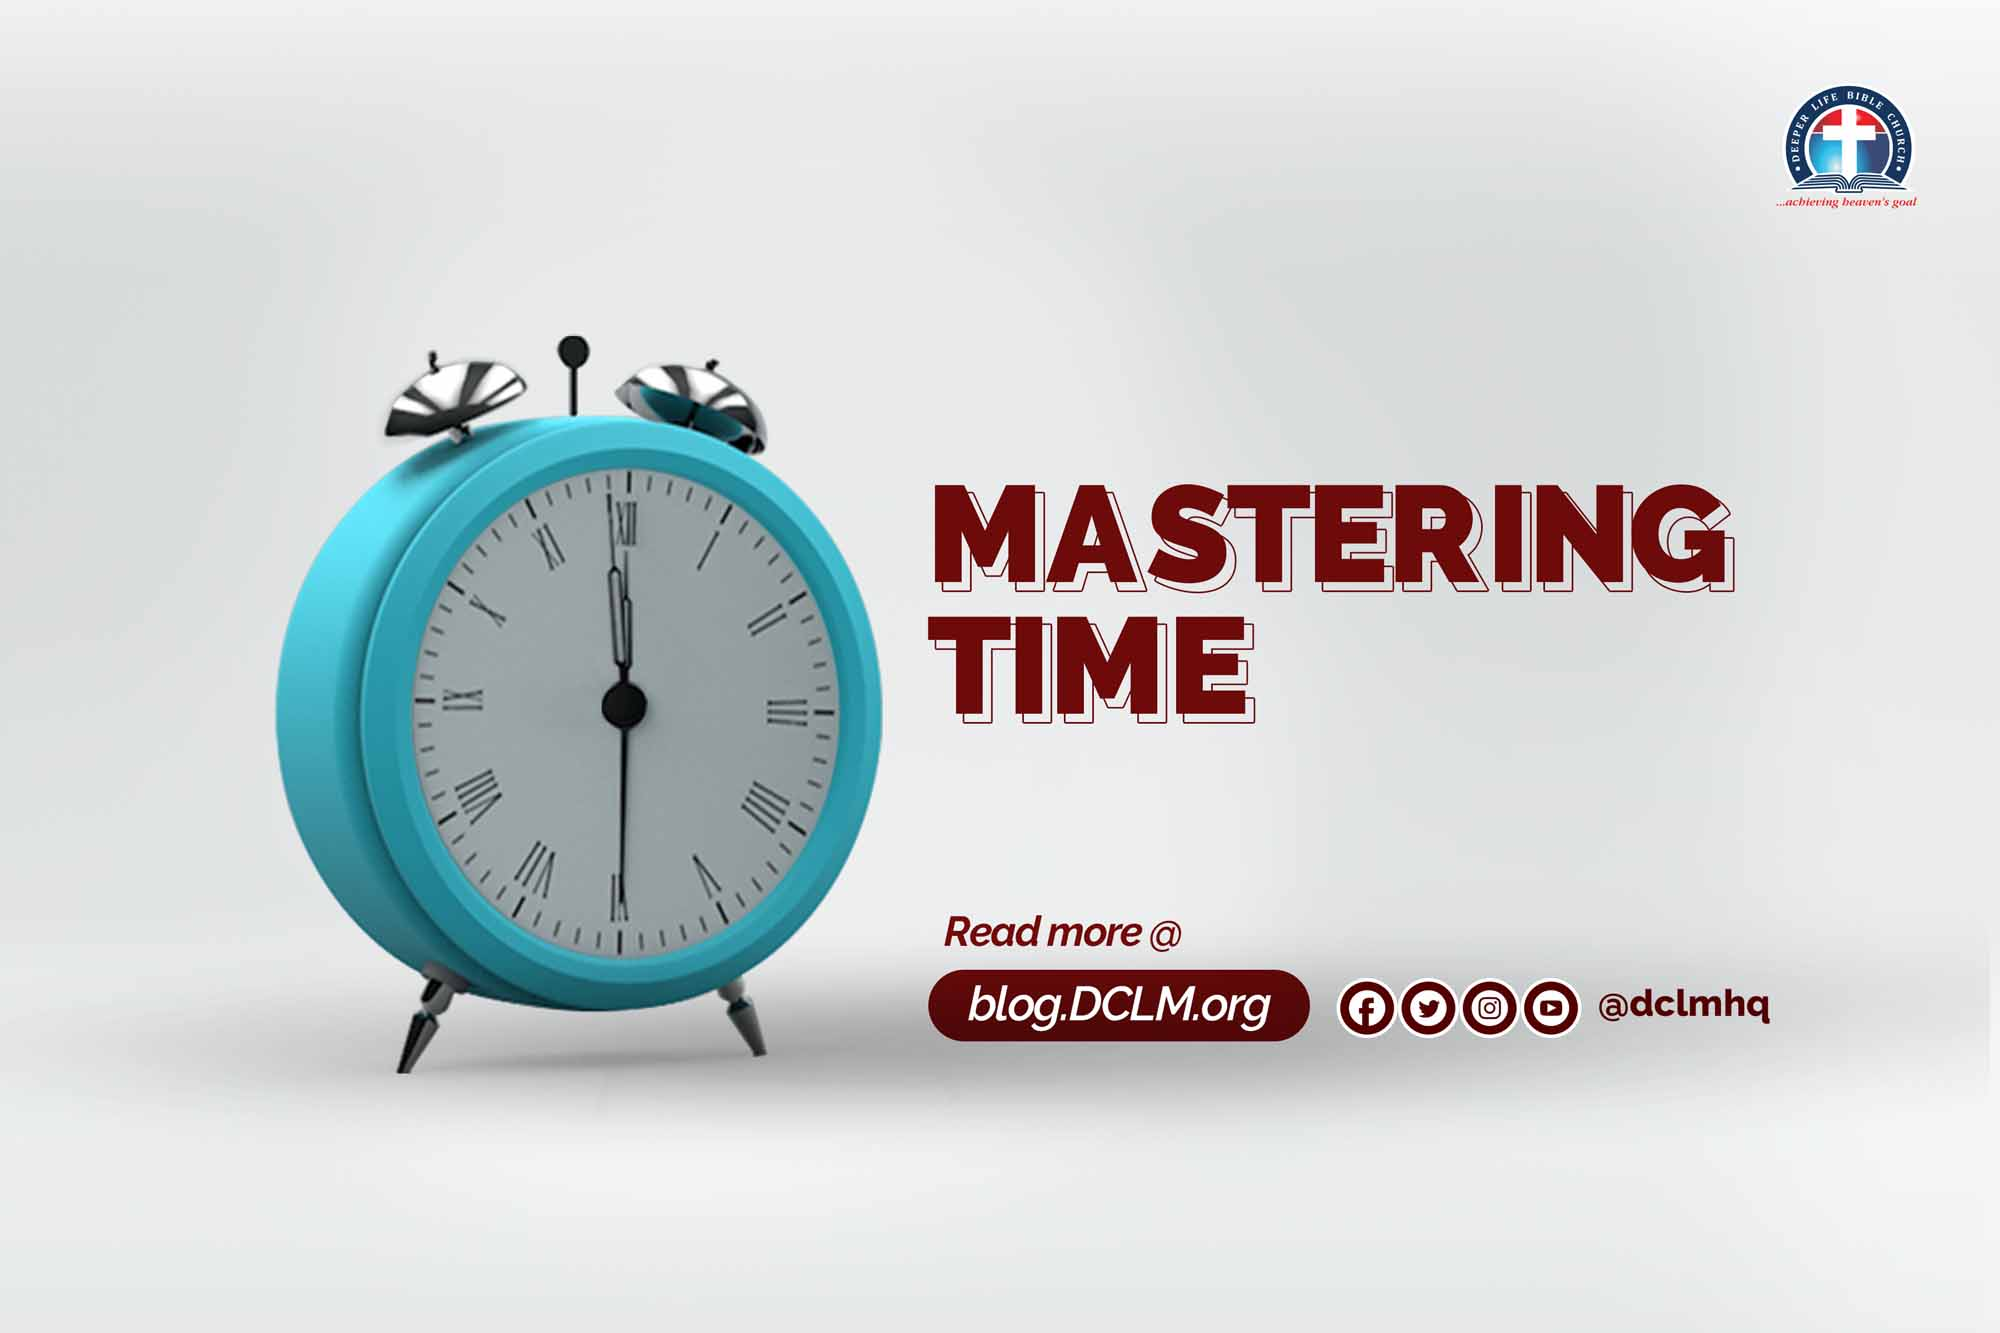 Time Management, Time Use, Time, Mastering, Control, Planning, Scheduling, Priority,